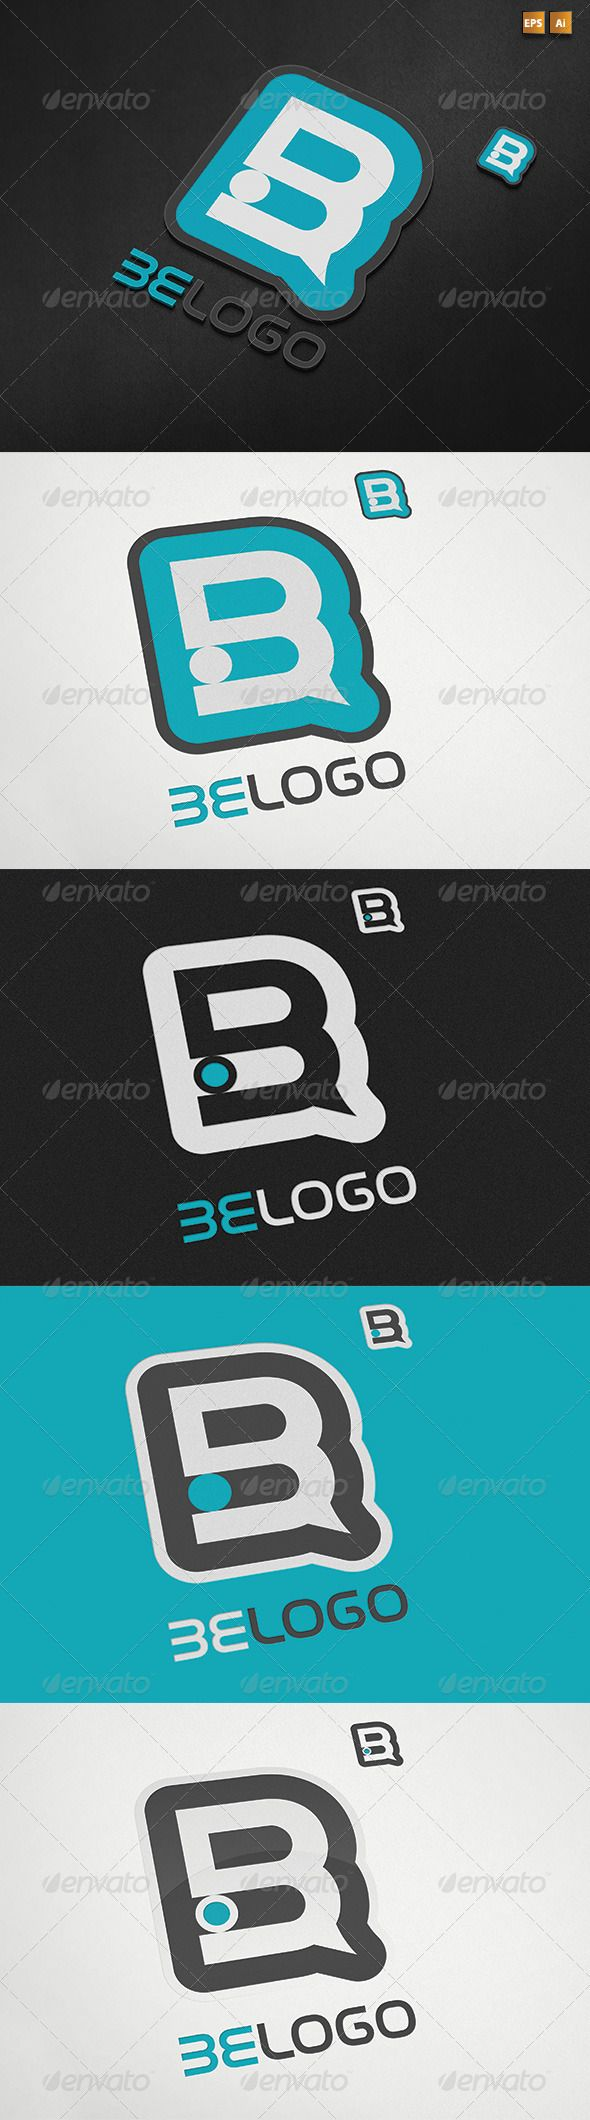 Two versions abstract letter  logo graphicriver summary info vector ai and eps files cmyk setting re sizable color customizable easy to edit used free also rh pinterest